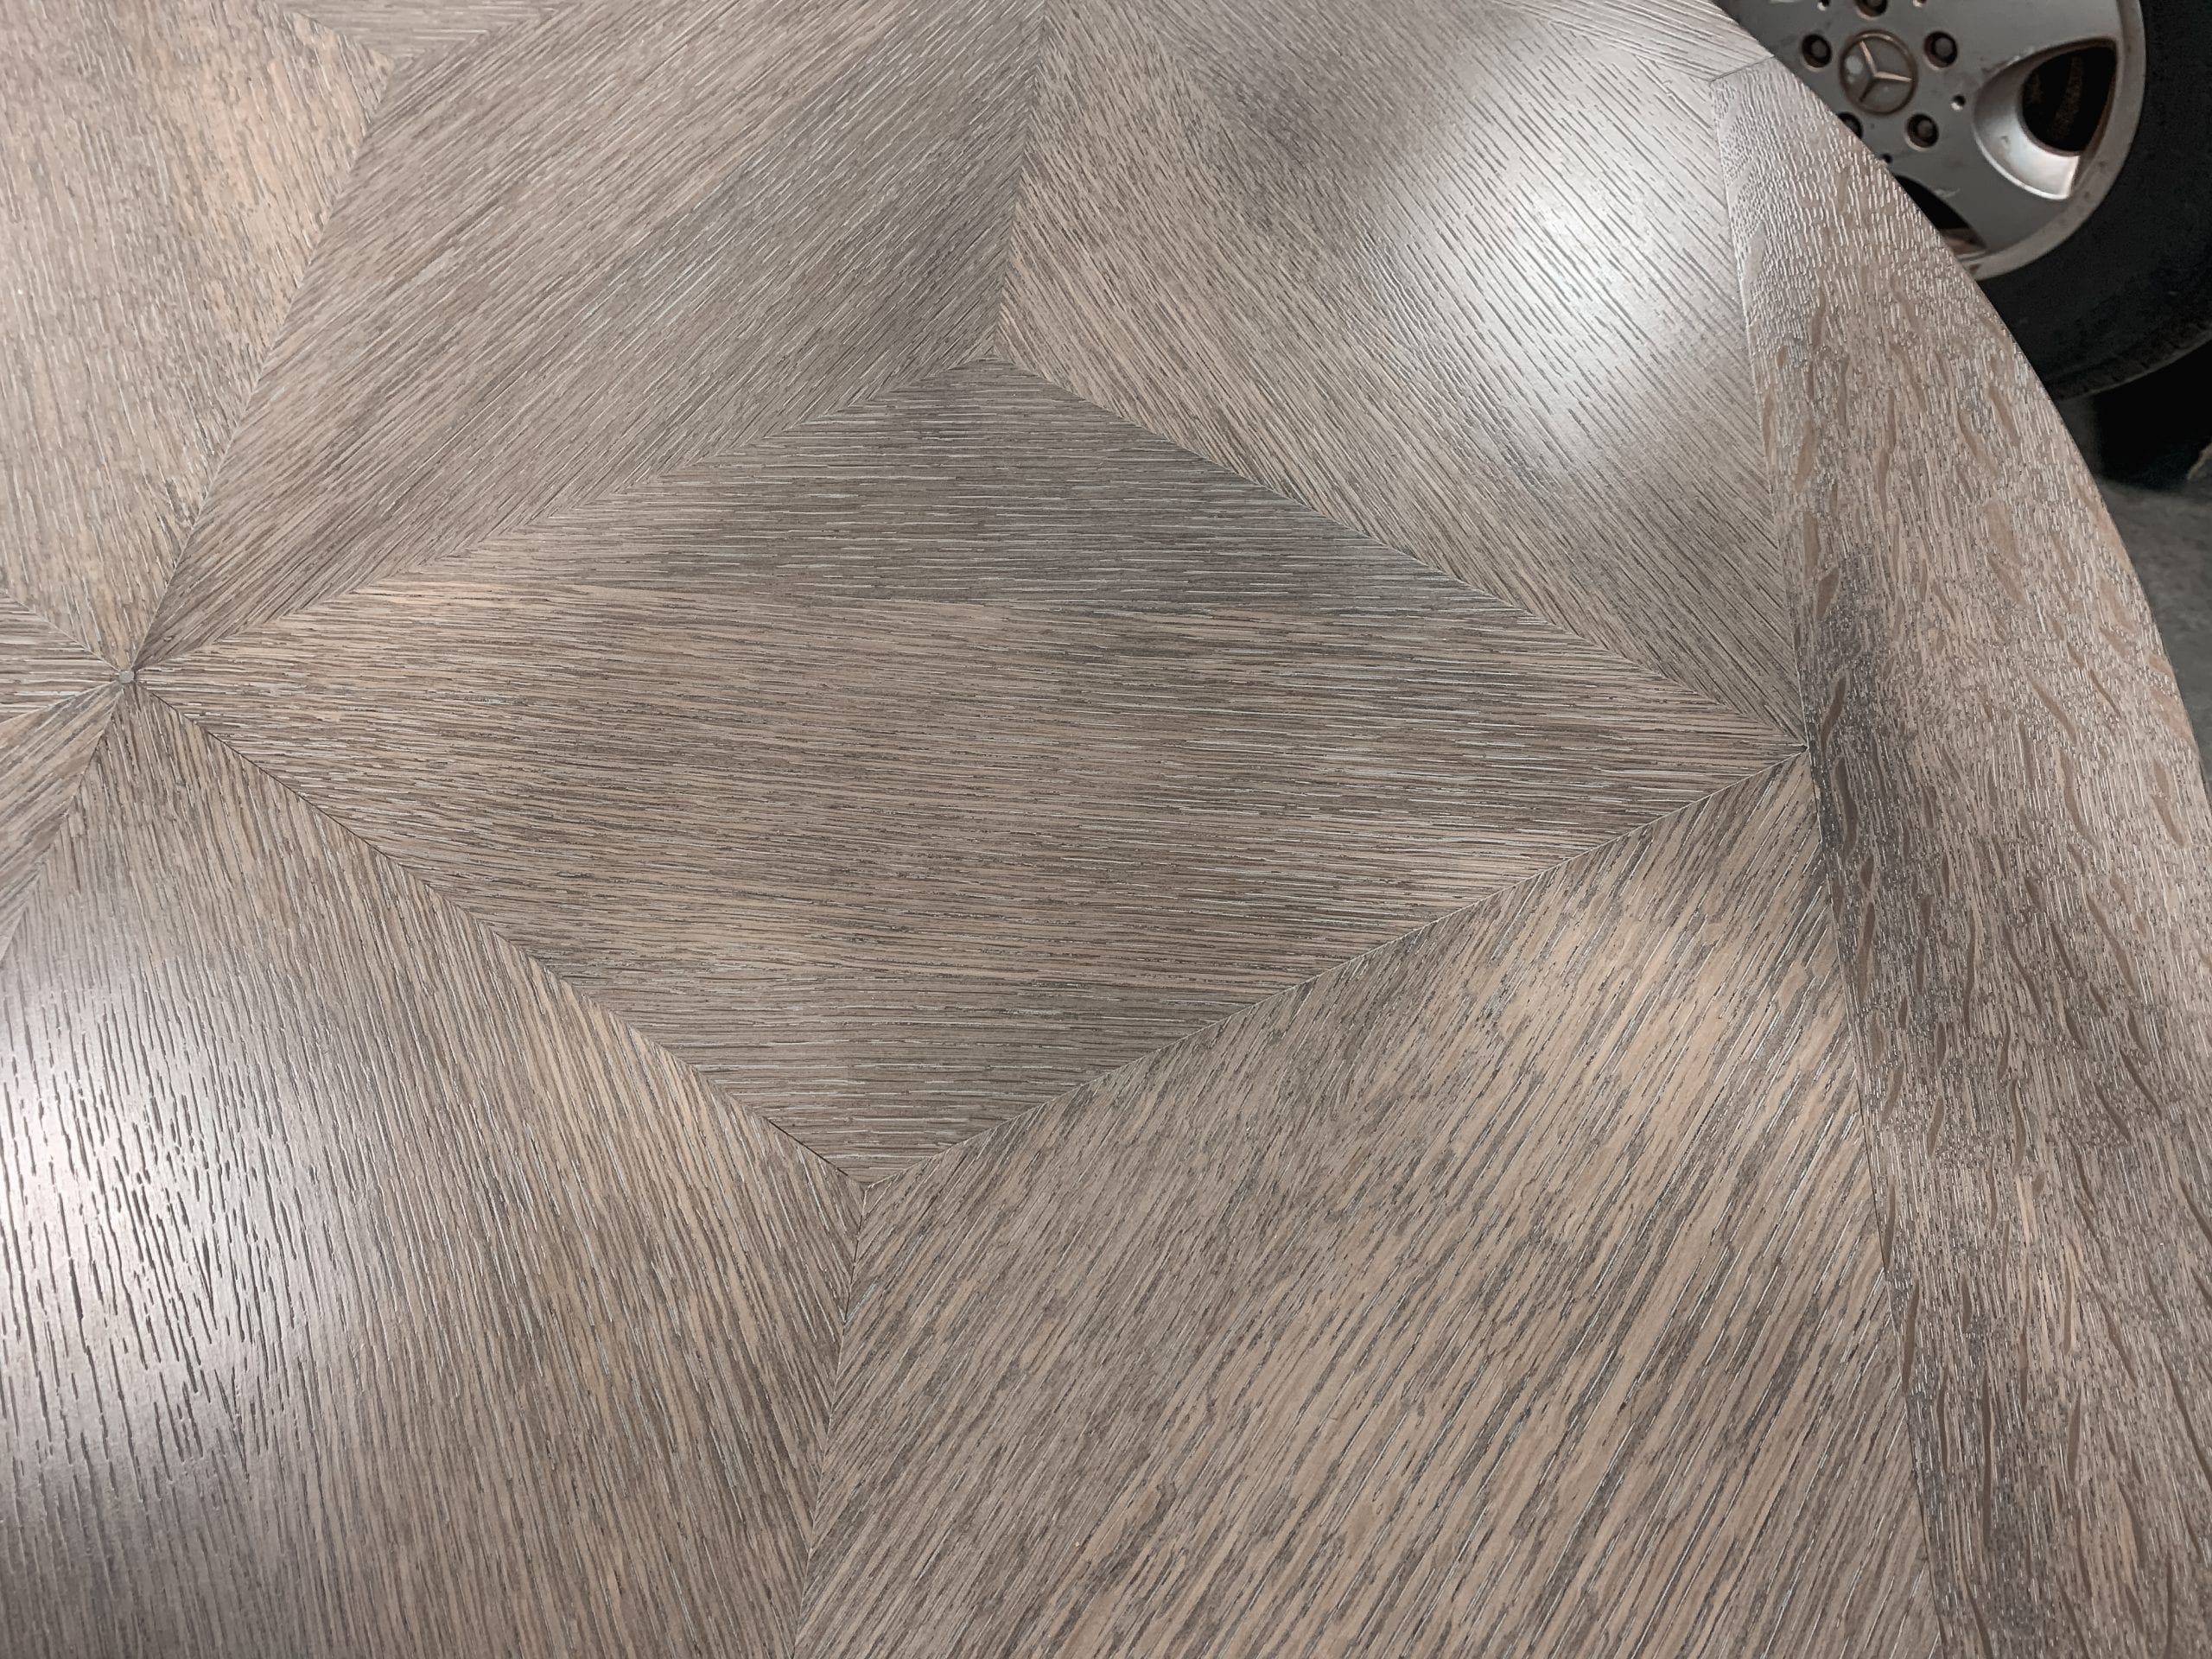 Wood Grain Details on 6 Point Star Table Top